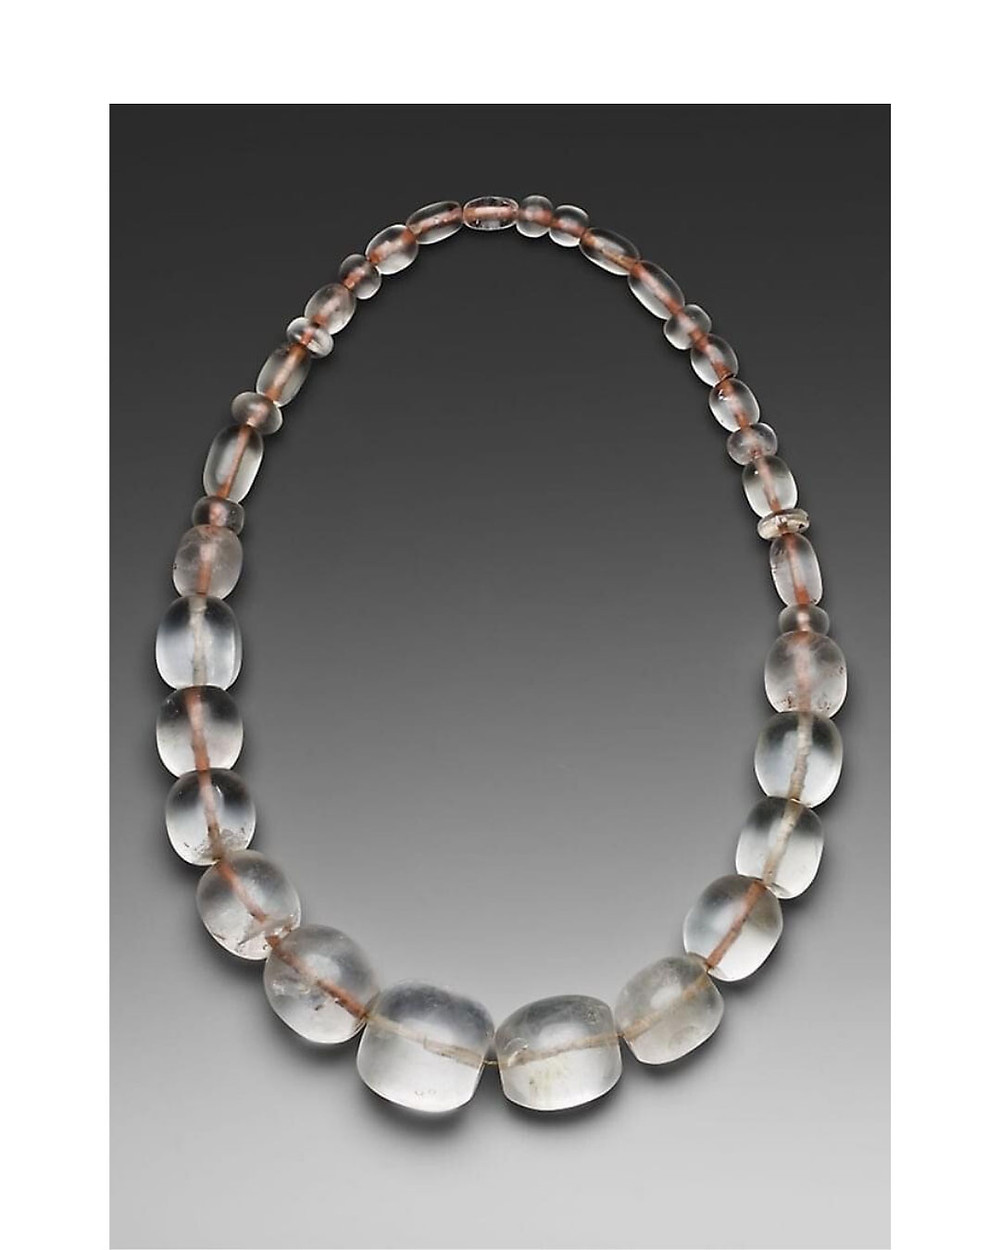 Collier en cristal de roche. Chavin, Chavin de Huantar, Perou. Art Institute of Chicago